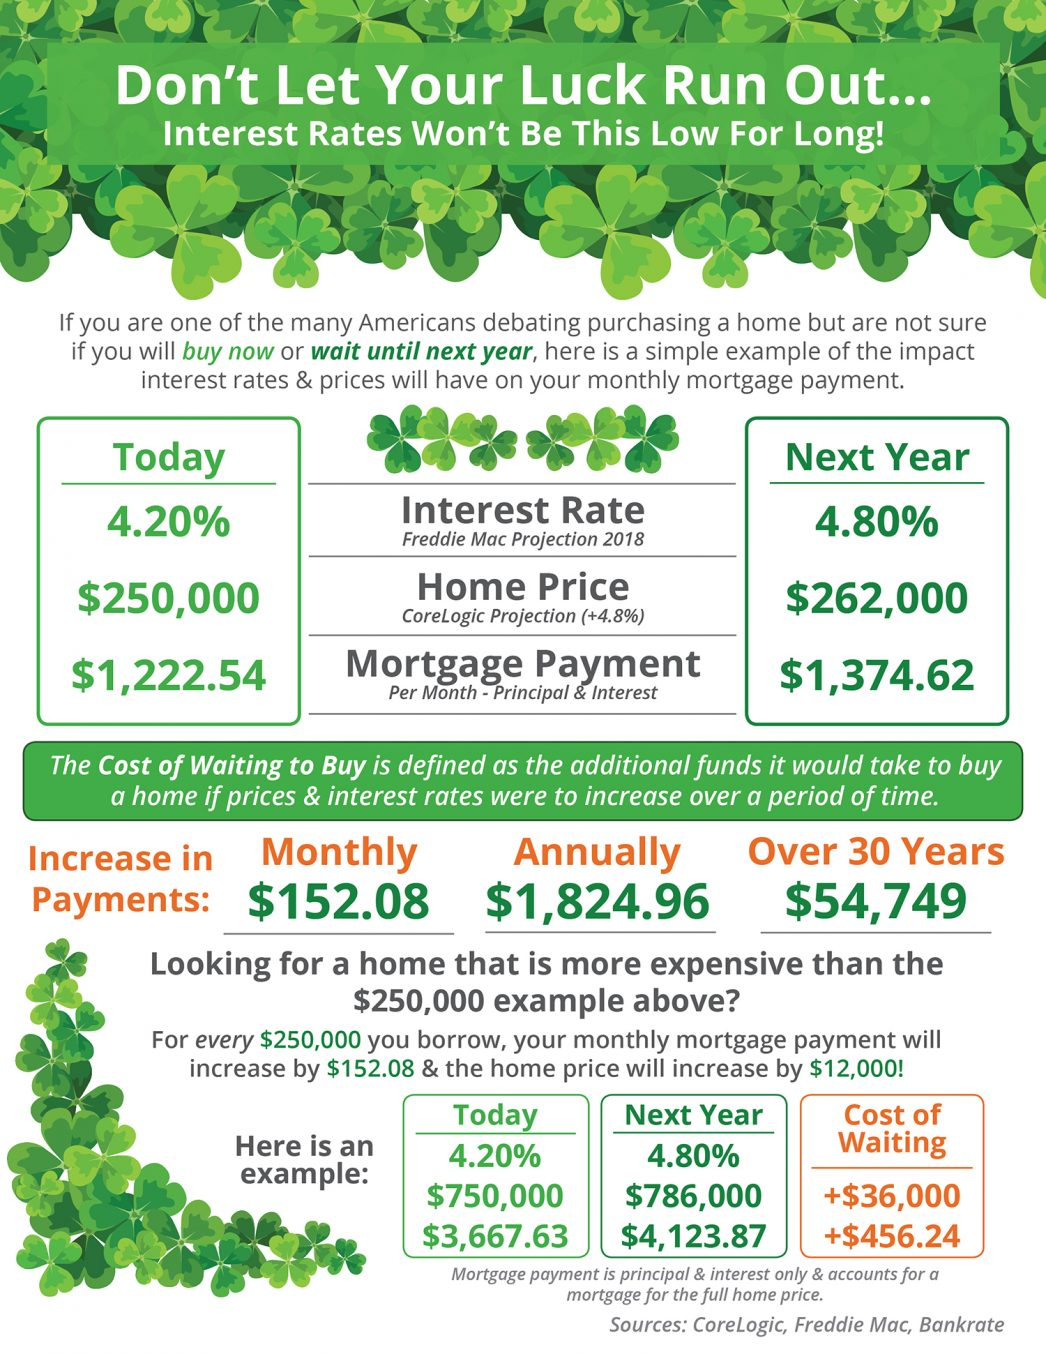 Don't Let Your Luck Run Out [INFOGRAPHIC] | MyKCM